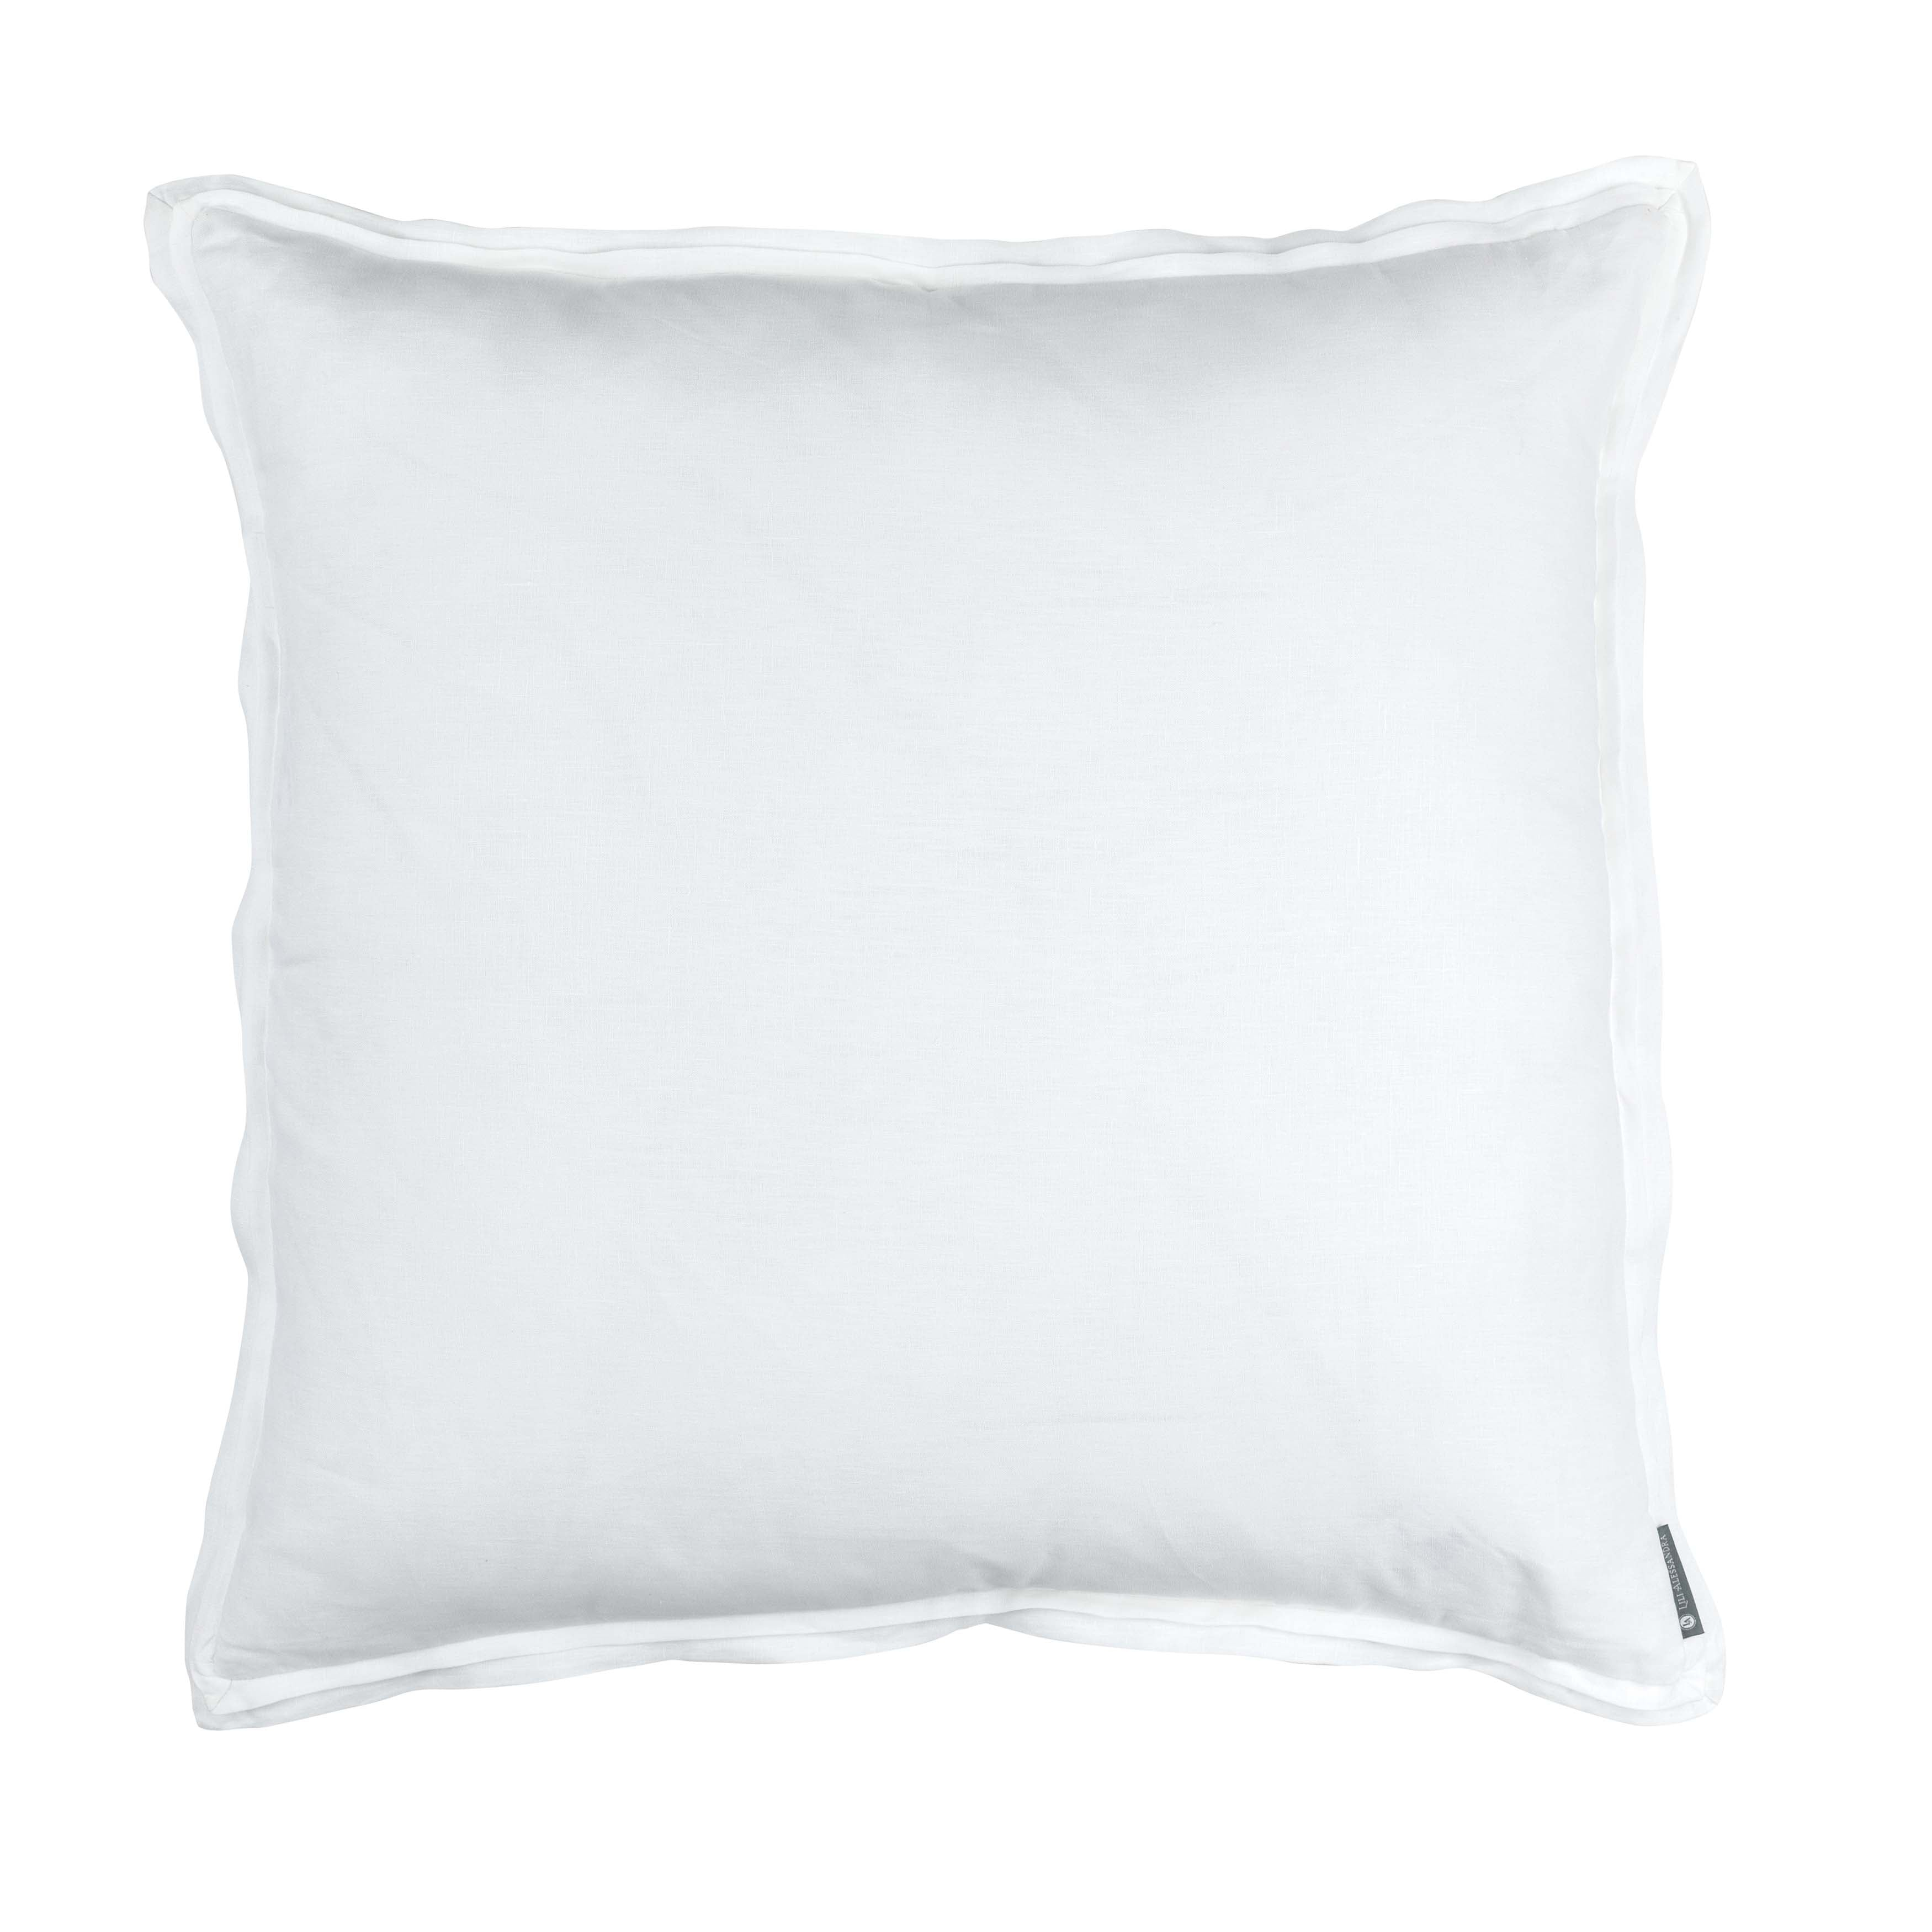 Bloom White Linen Euro Throw Pillow Throw Pillows By Lili Alessandra